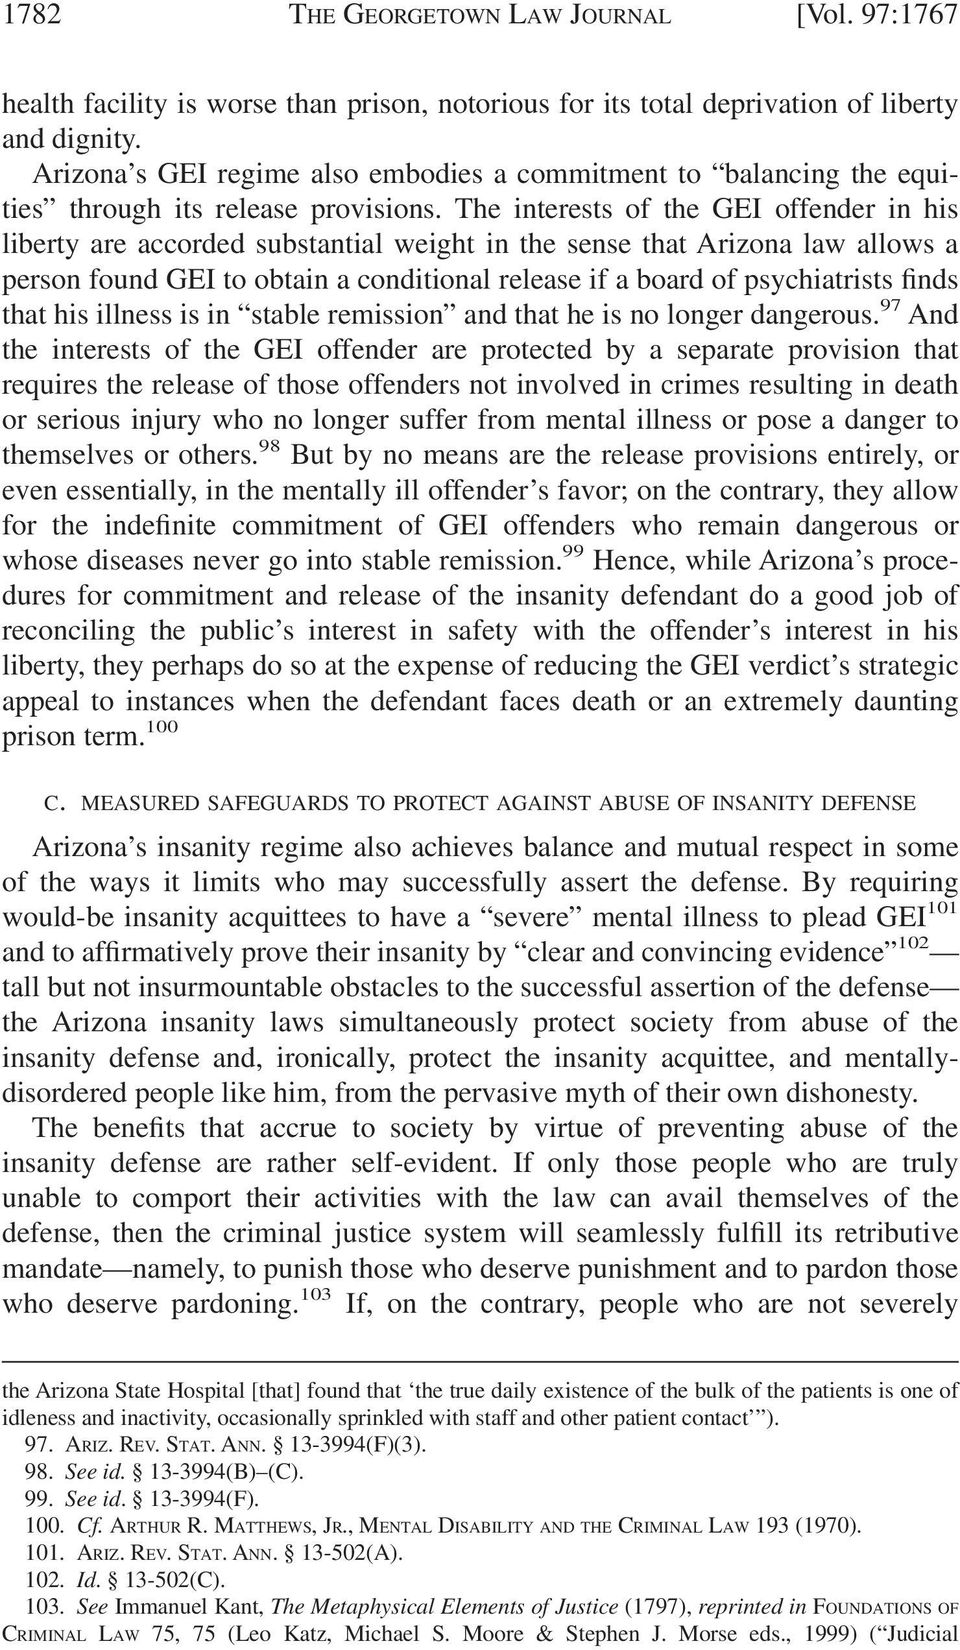 The interests of the GEI offender in his liberty are accorded substantial weight in the sense that Arizona law allows a person found GEI to obtain a conditional release if a board of psychiatrists